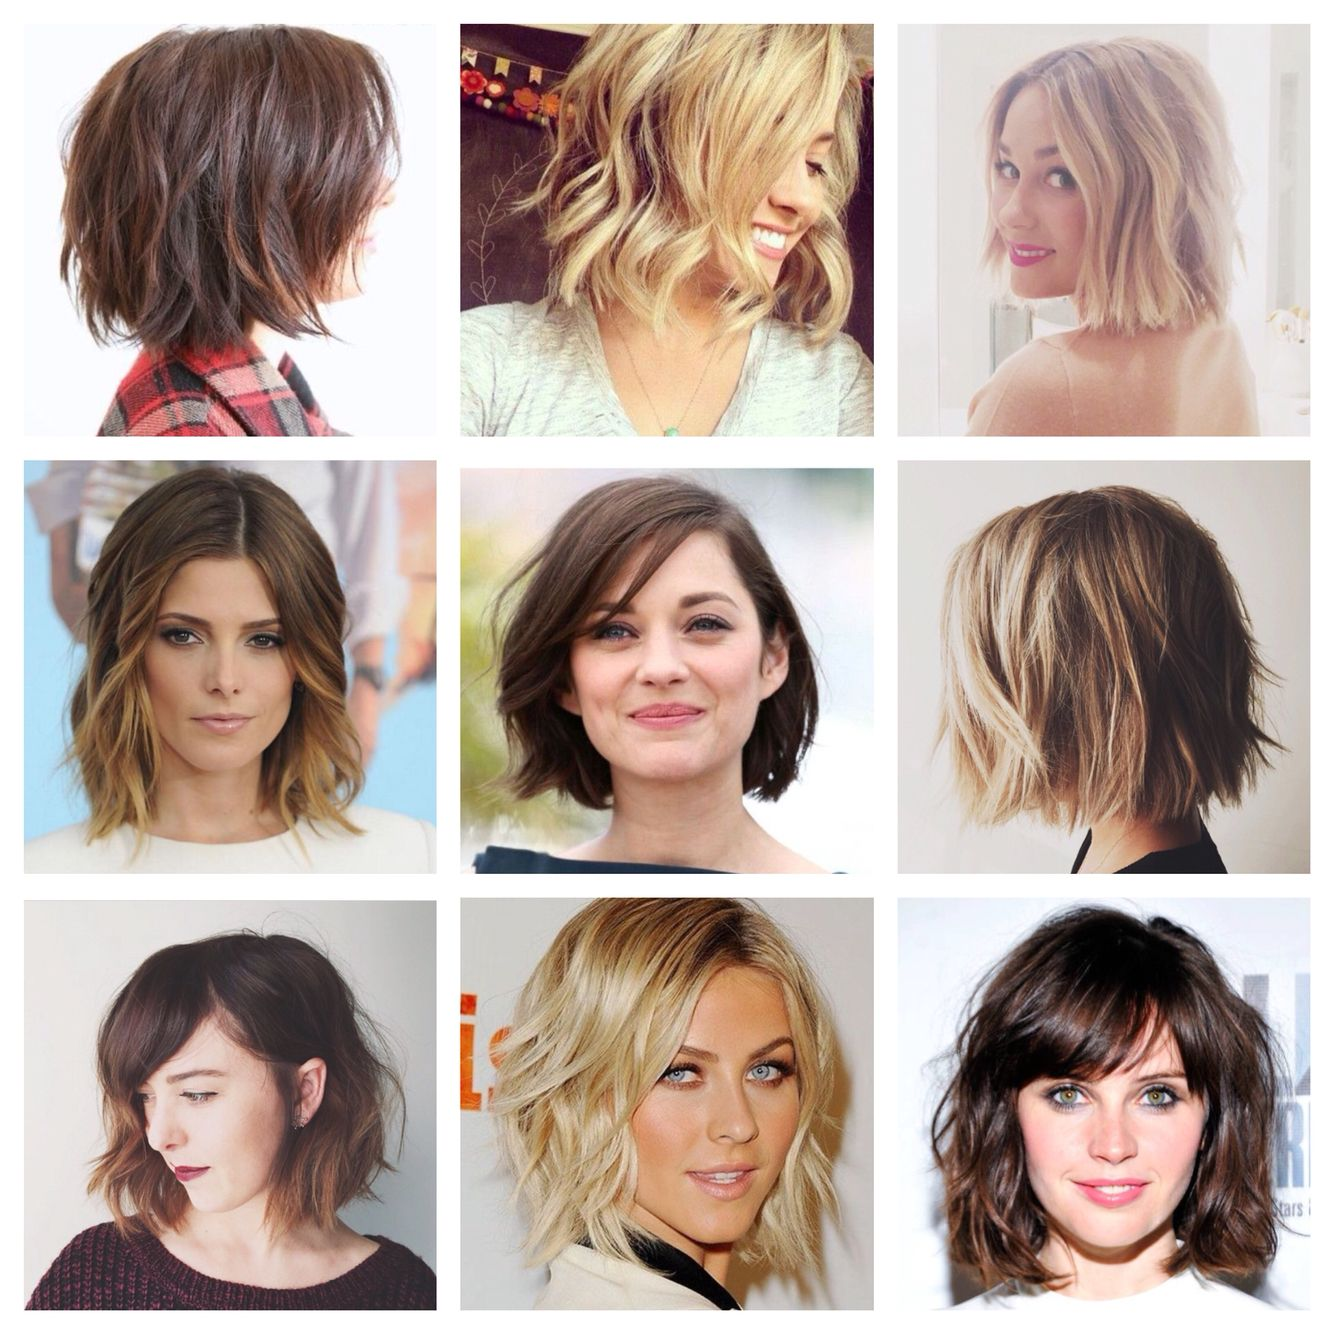 Looking For Bob Hair Models On Monday S In Santa Monica Freehaircut Model Hair Free Haircut Bob Hairstyles